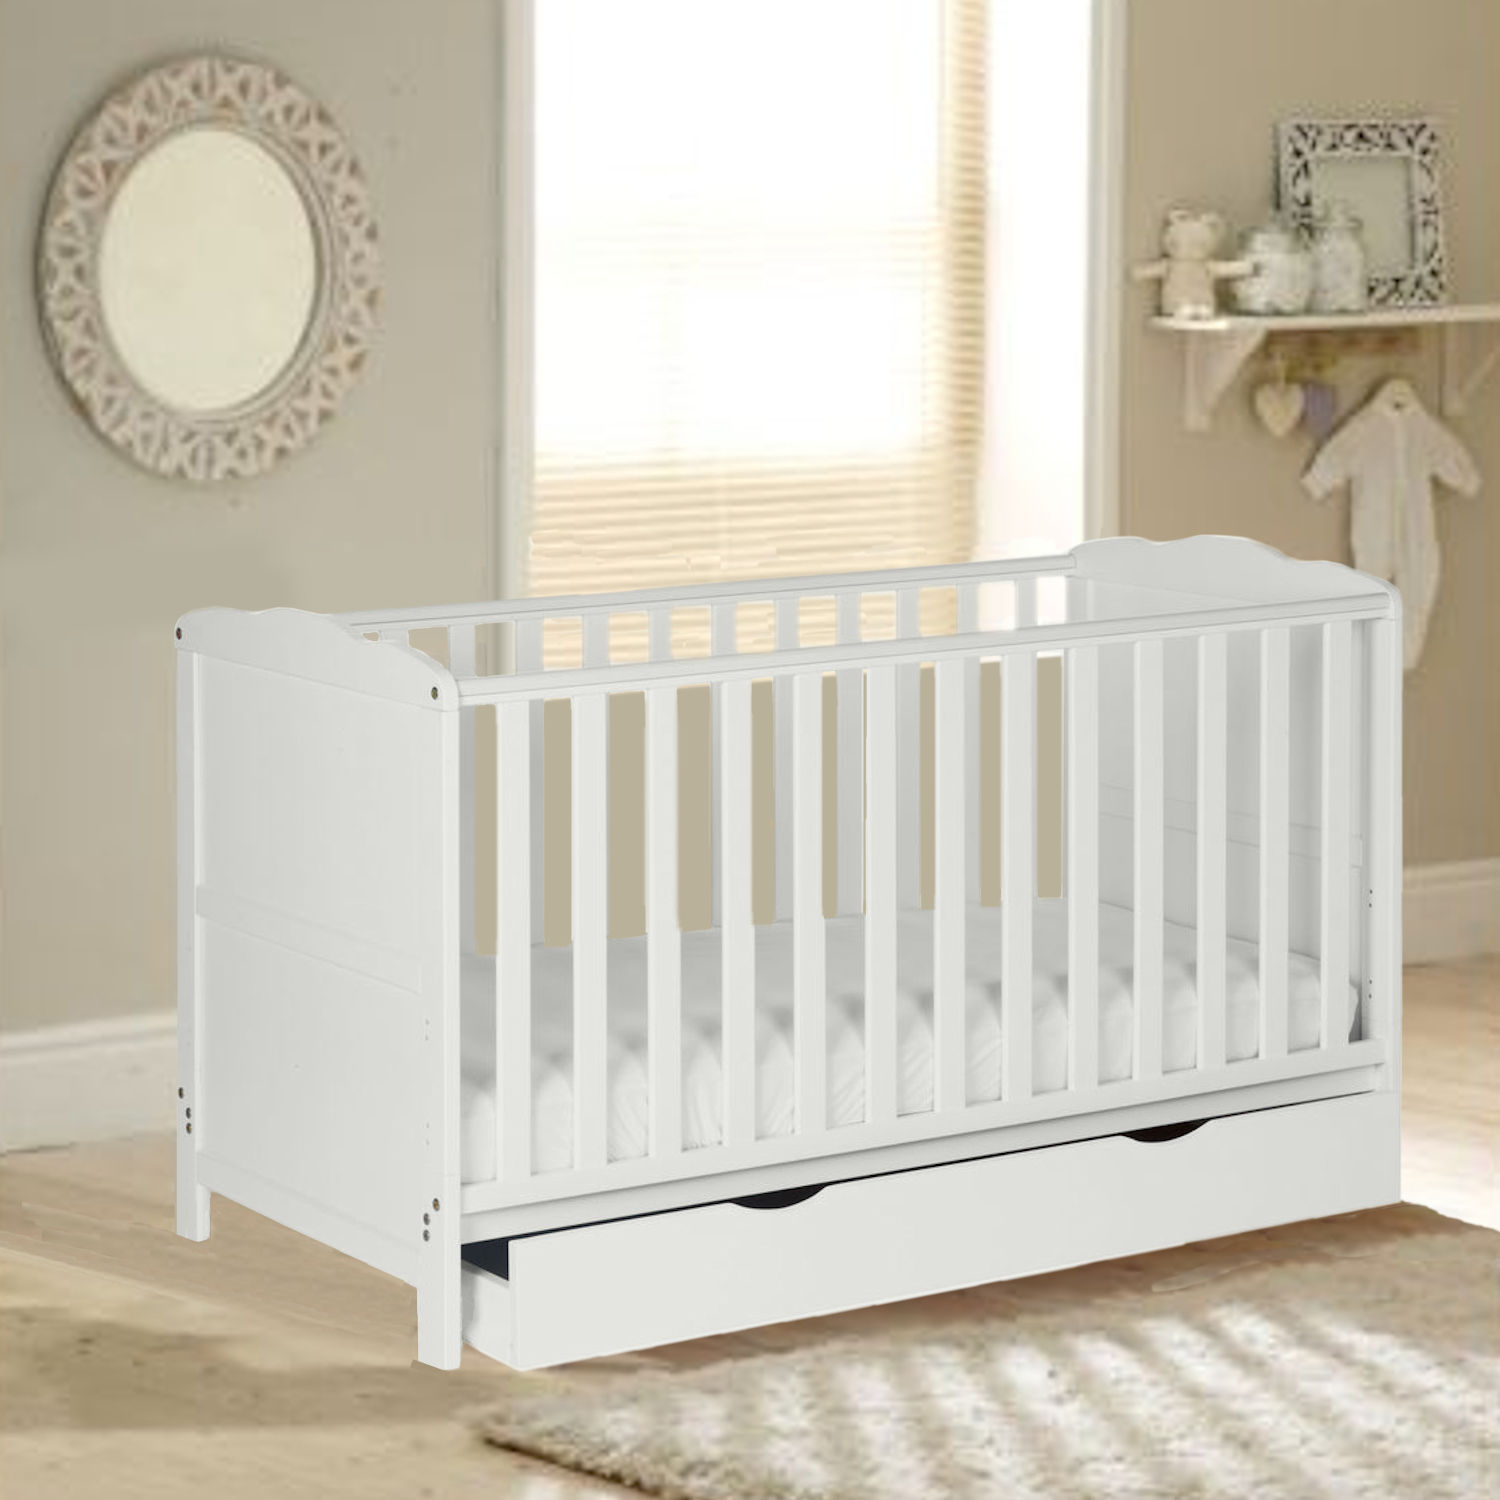 4Baby Little Acorns Classic Cot Bed 6pc Nursery Furniture ...